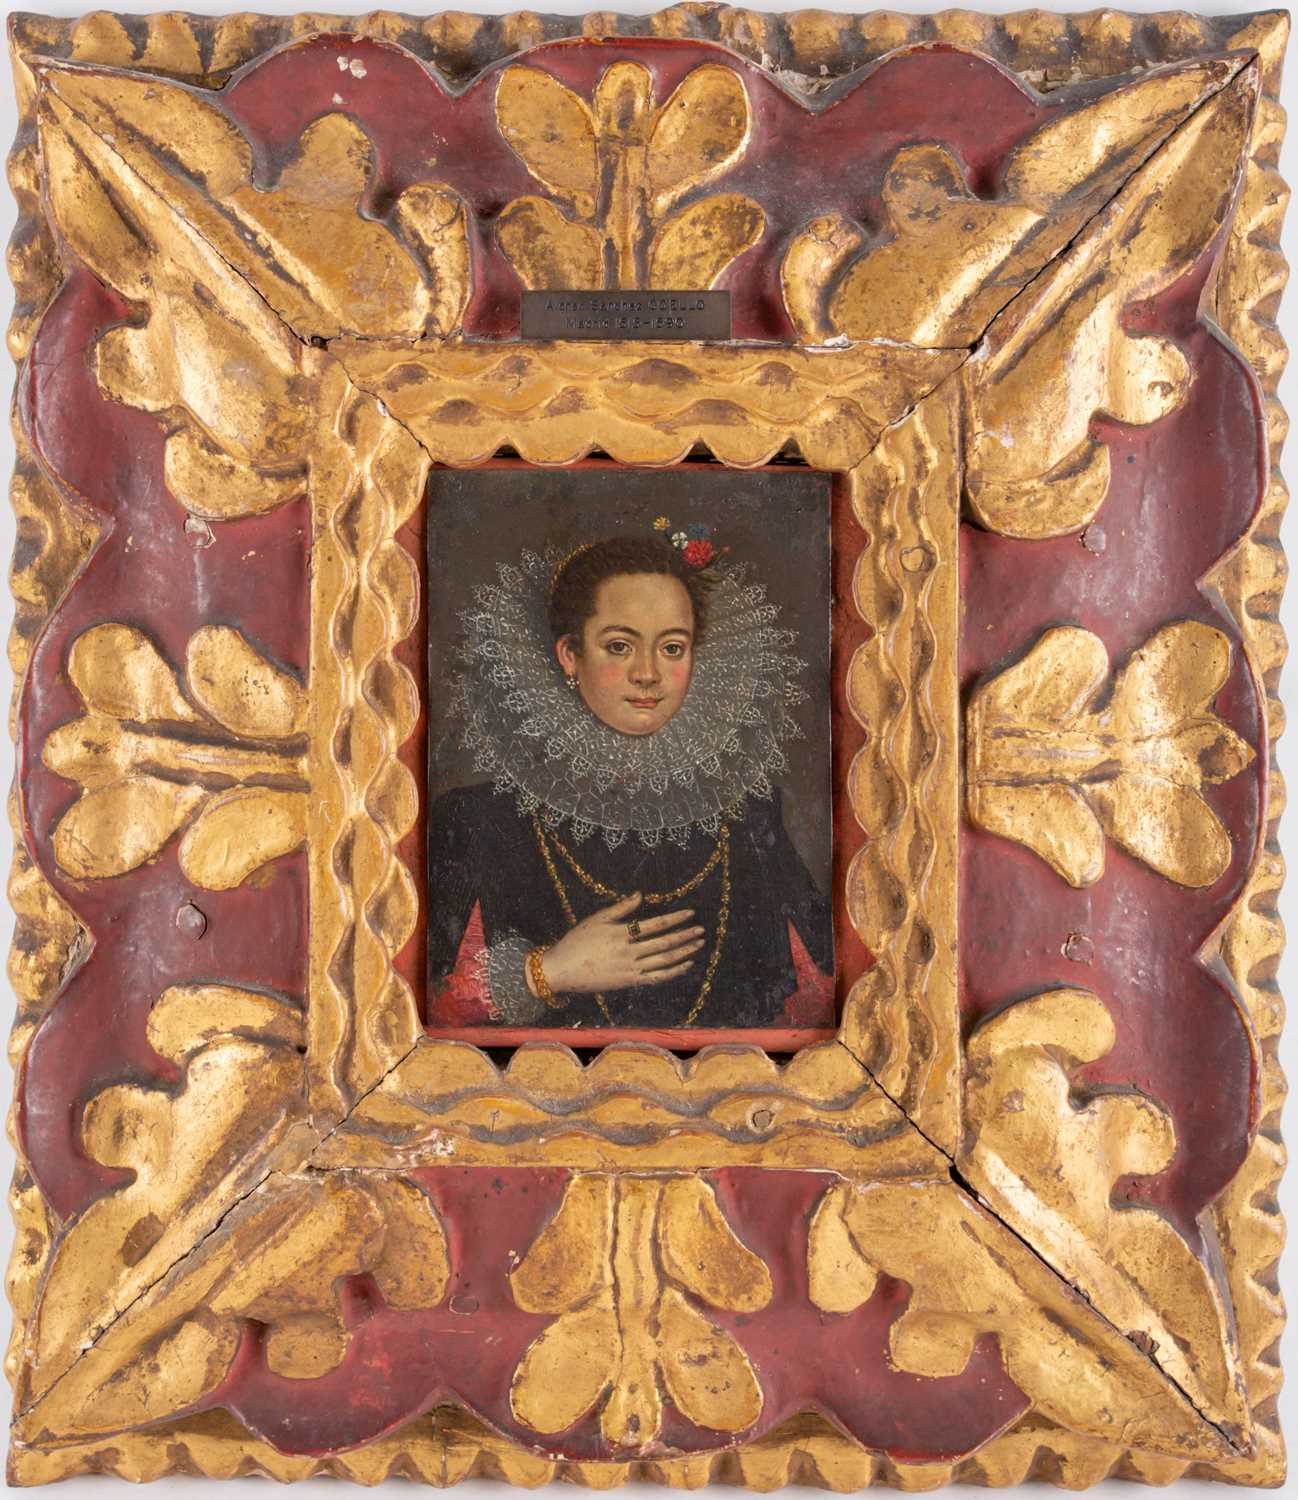 Alonso Sanchez Coello Spanish portrait noblewoman oil on copper